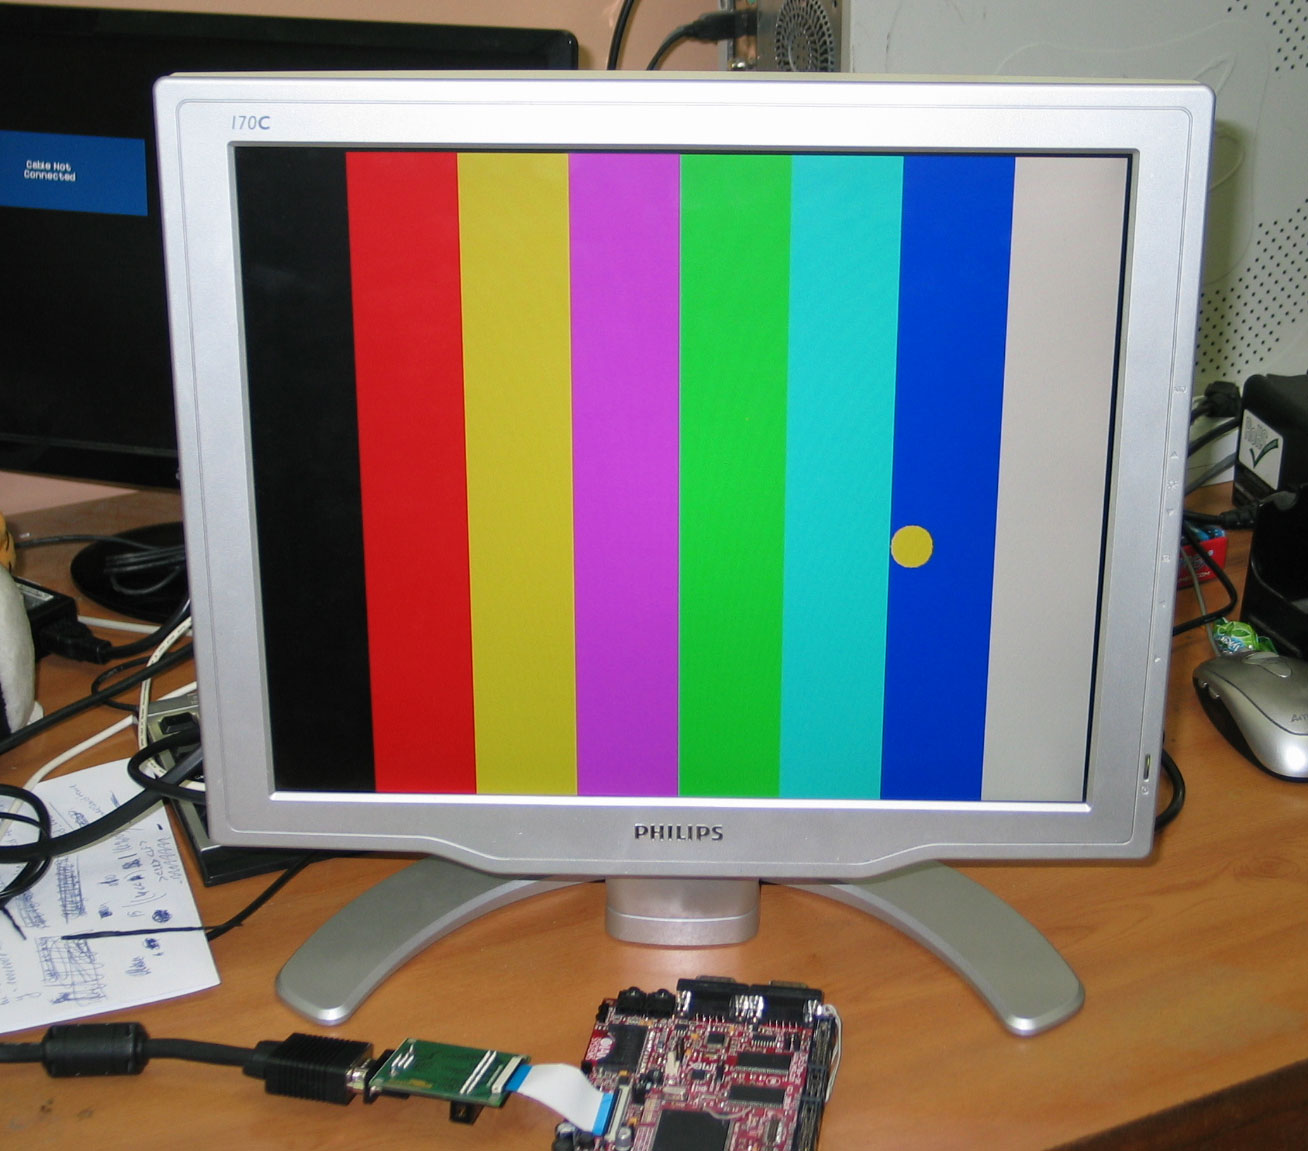 Low Cost Lcd To Vga Adapter Olimex R 2r Ladder Circuit Diagram Image